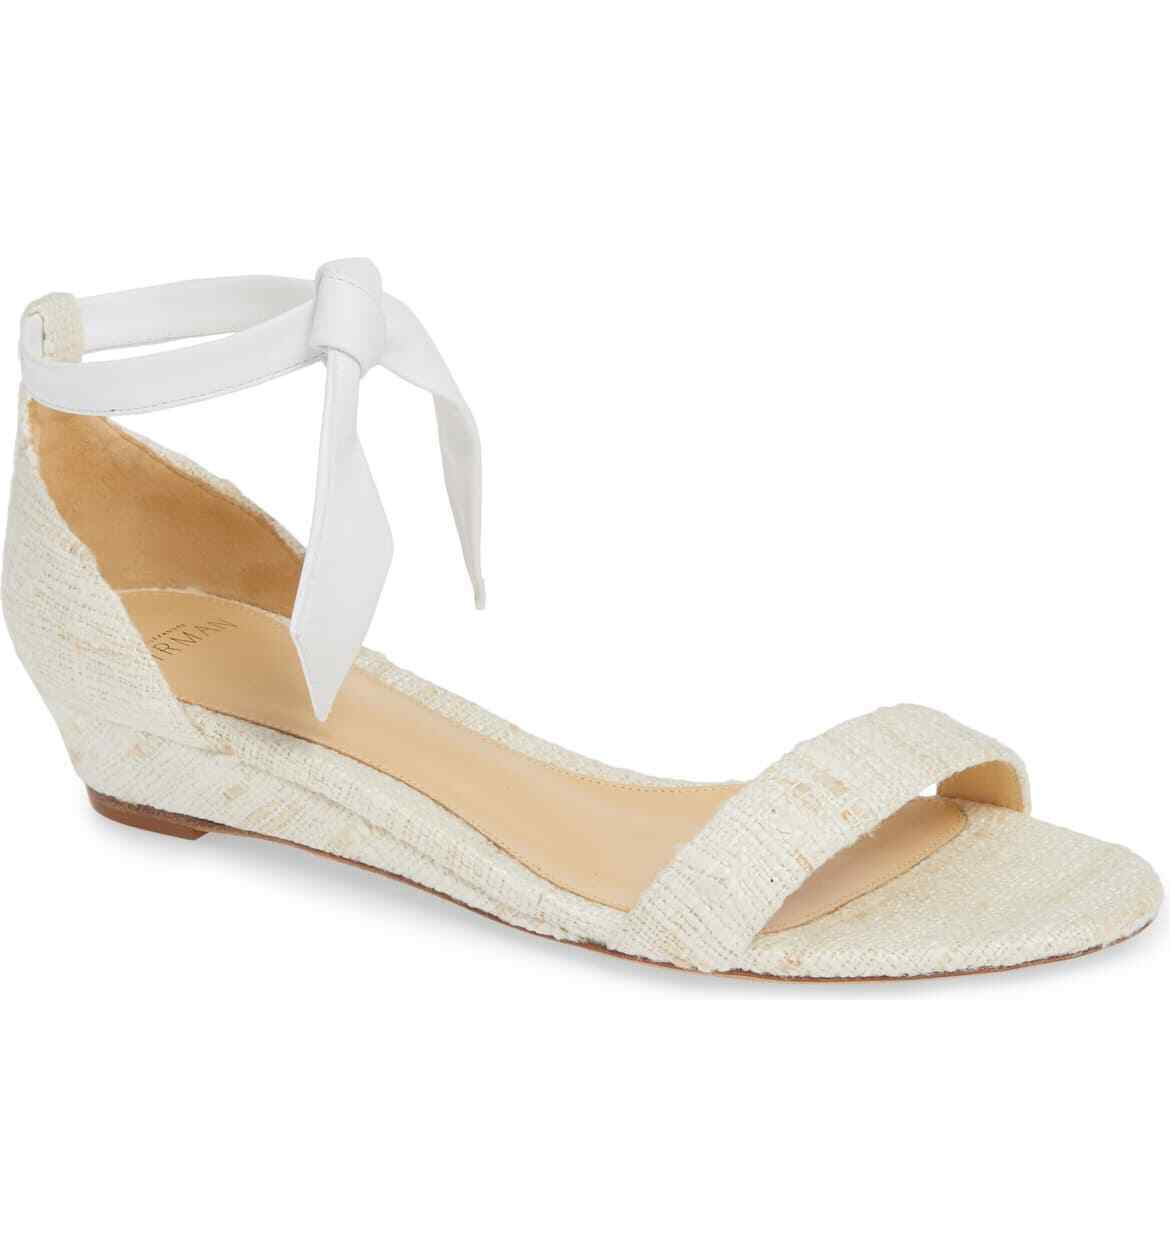 Primary image for ALEXANDRE BIRMAN WHITE Clarita Wedge Sandal Size 36.5